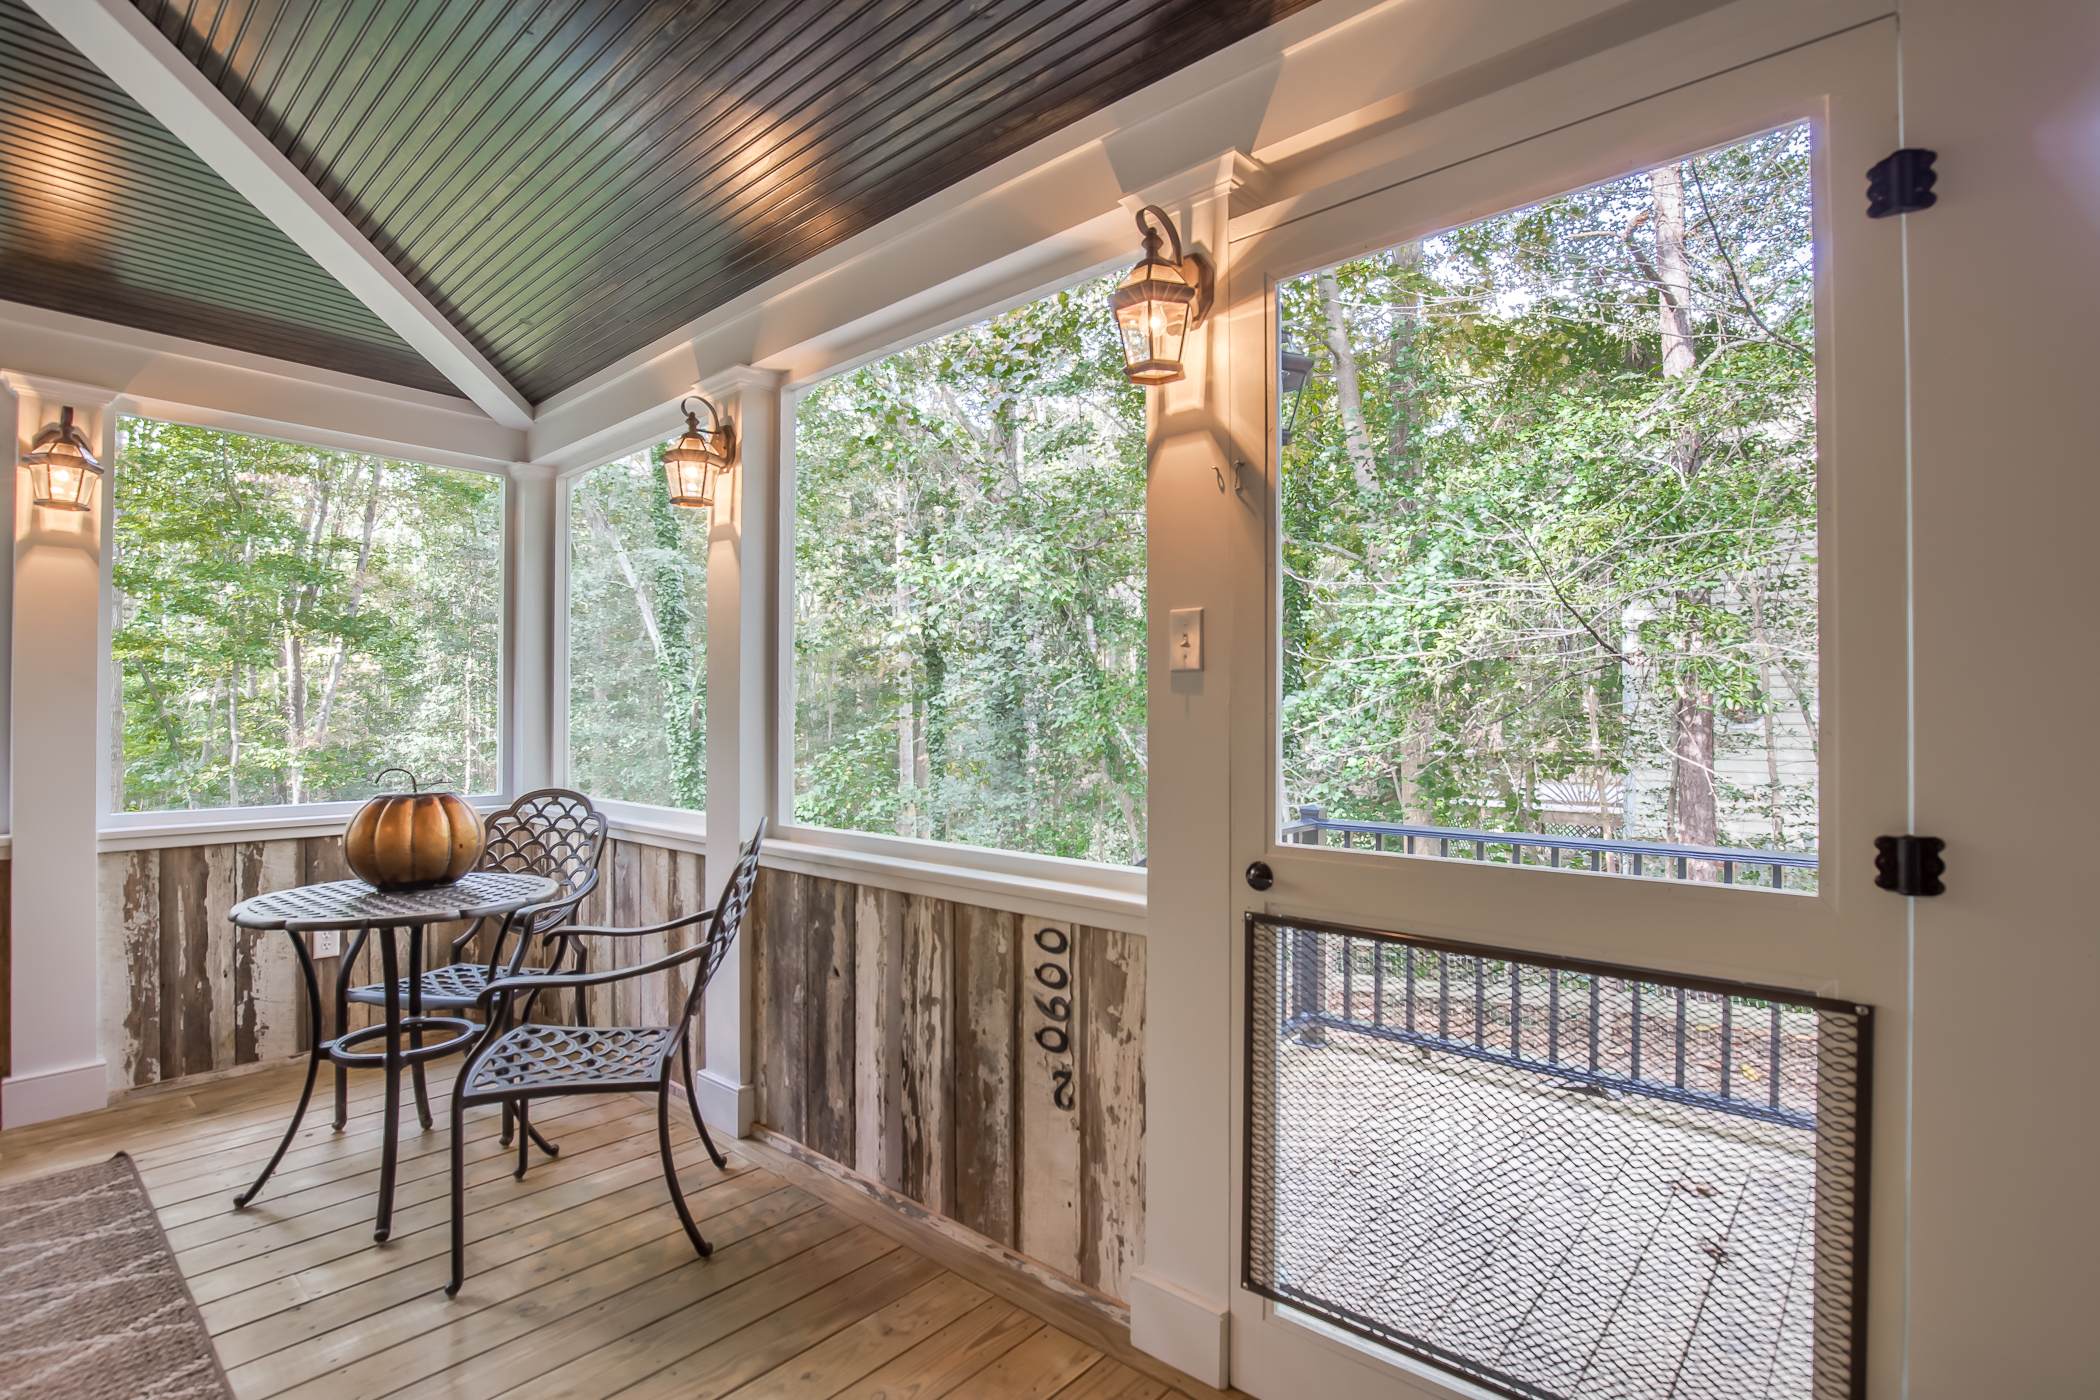 Propeller Ceiling Fan Country Style Screened Porch In Chesterfield Va | Rva